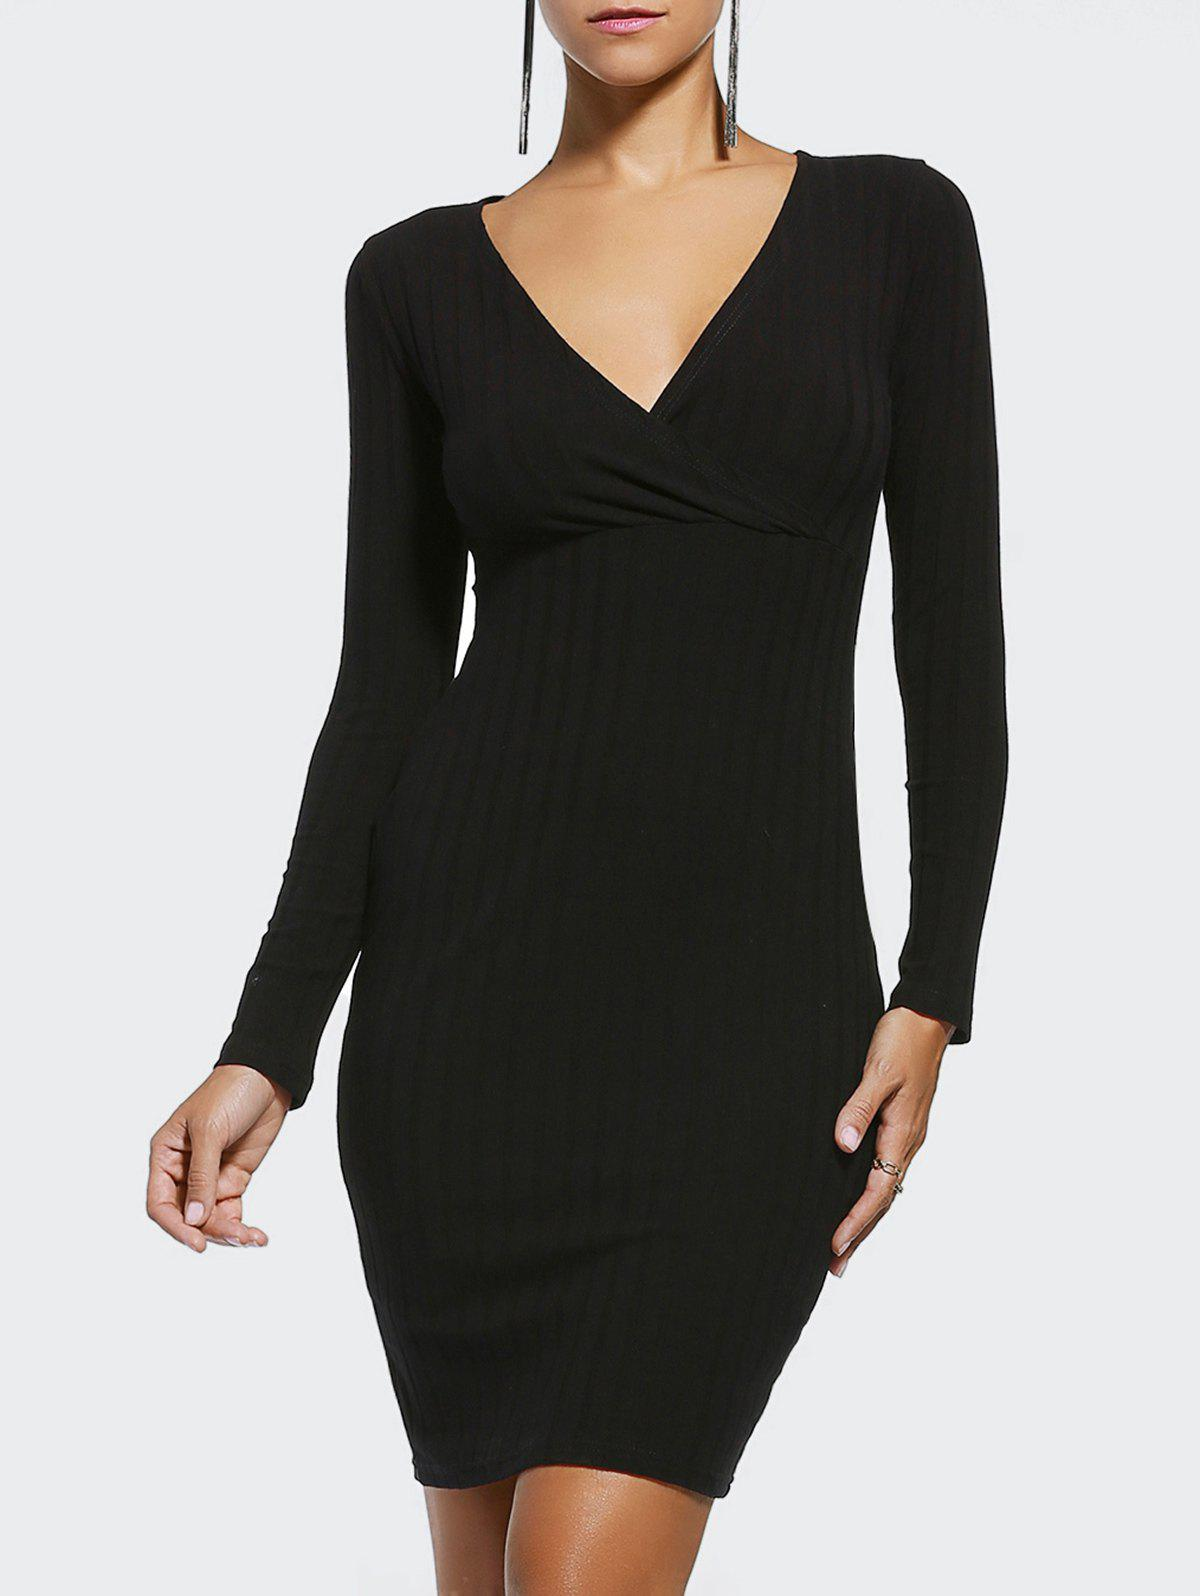 Elegant Plunging Neck Long Sleeve Patchwork Bodycon Dress For Women - BLACK XL